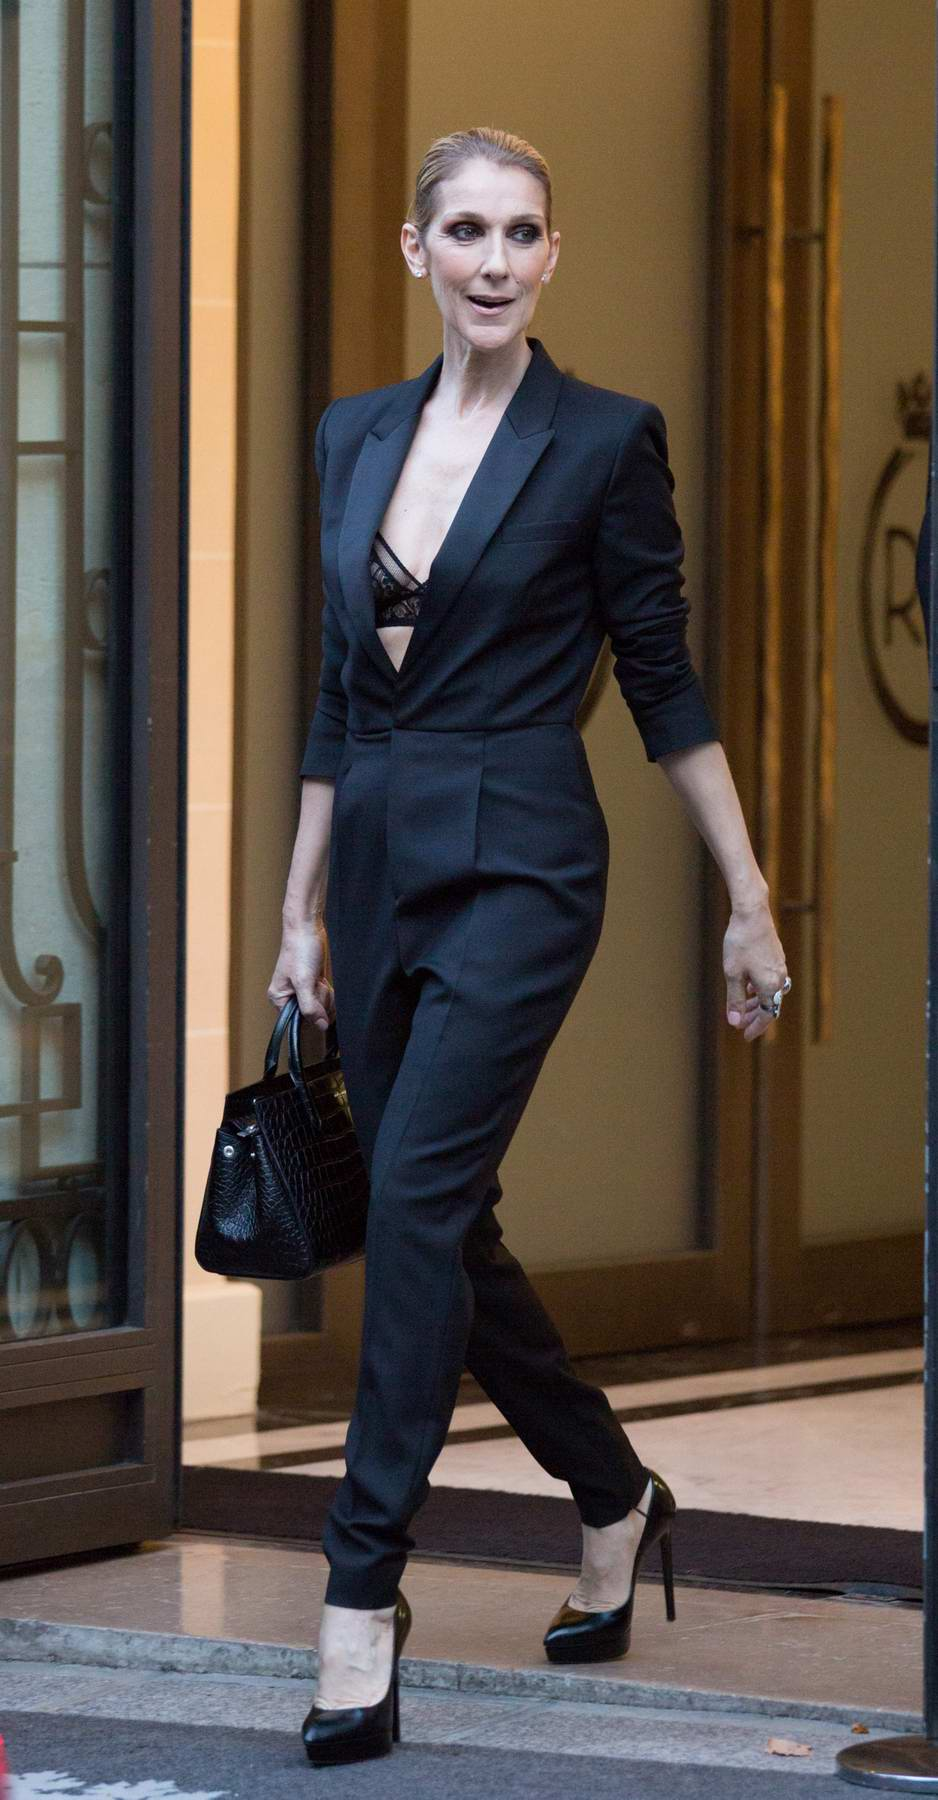 Celine Dion leaving Royal Monceau Hotel in Paris, France